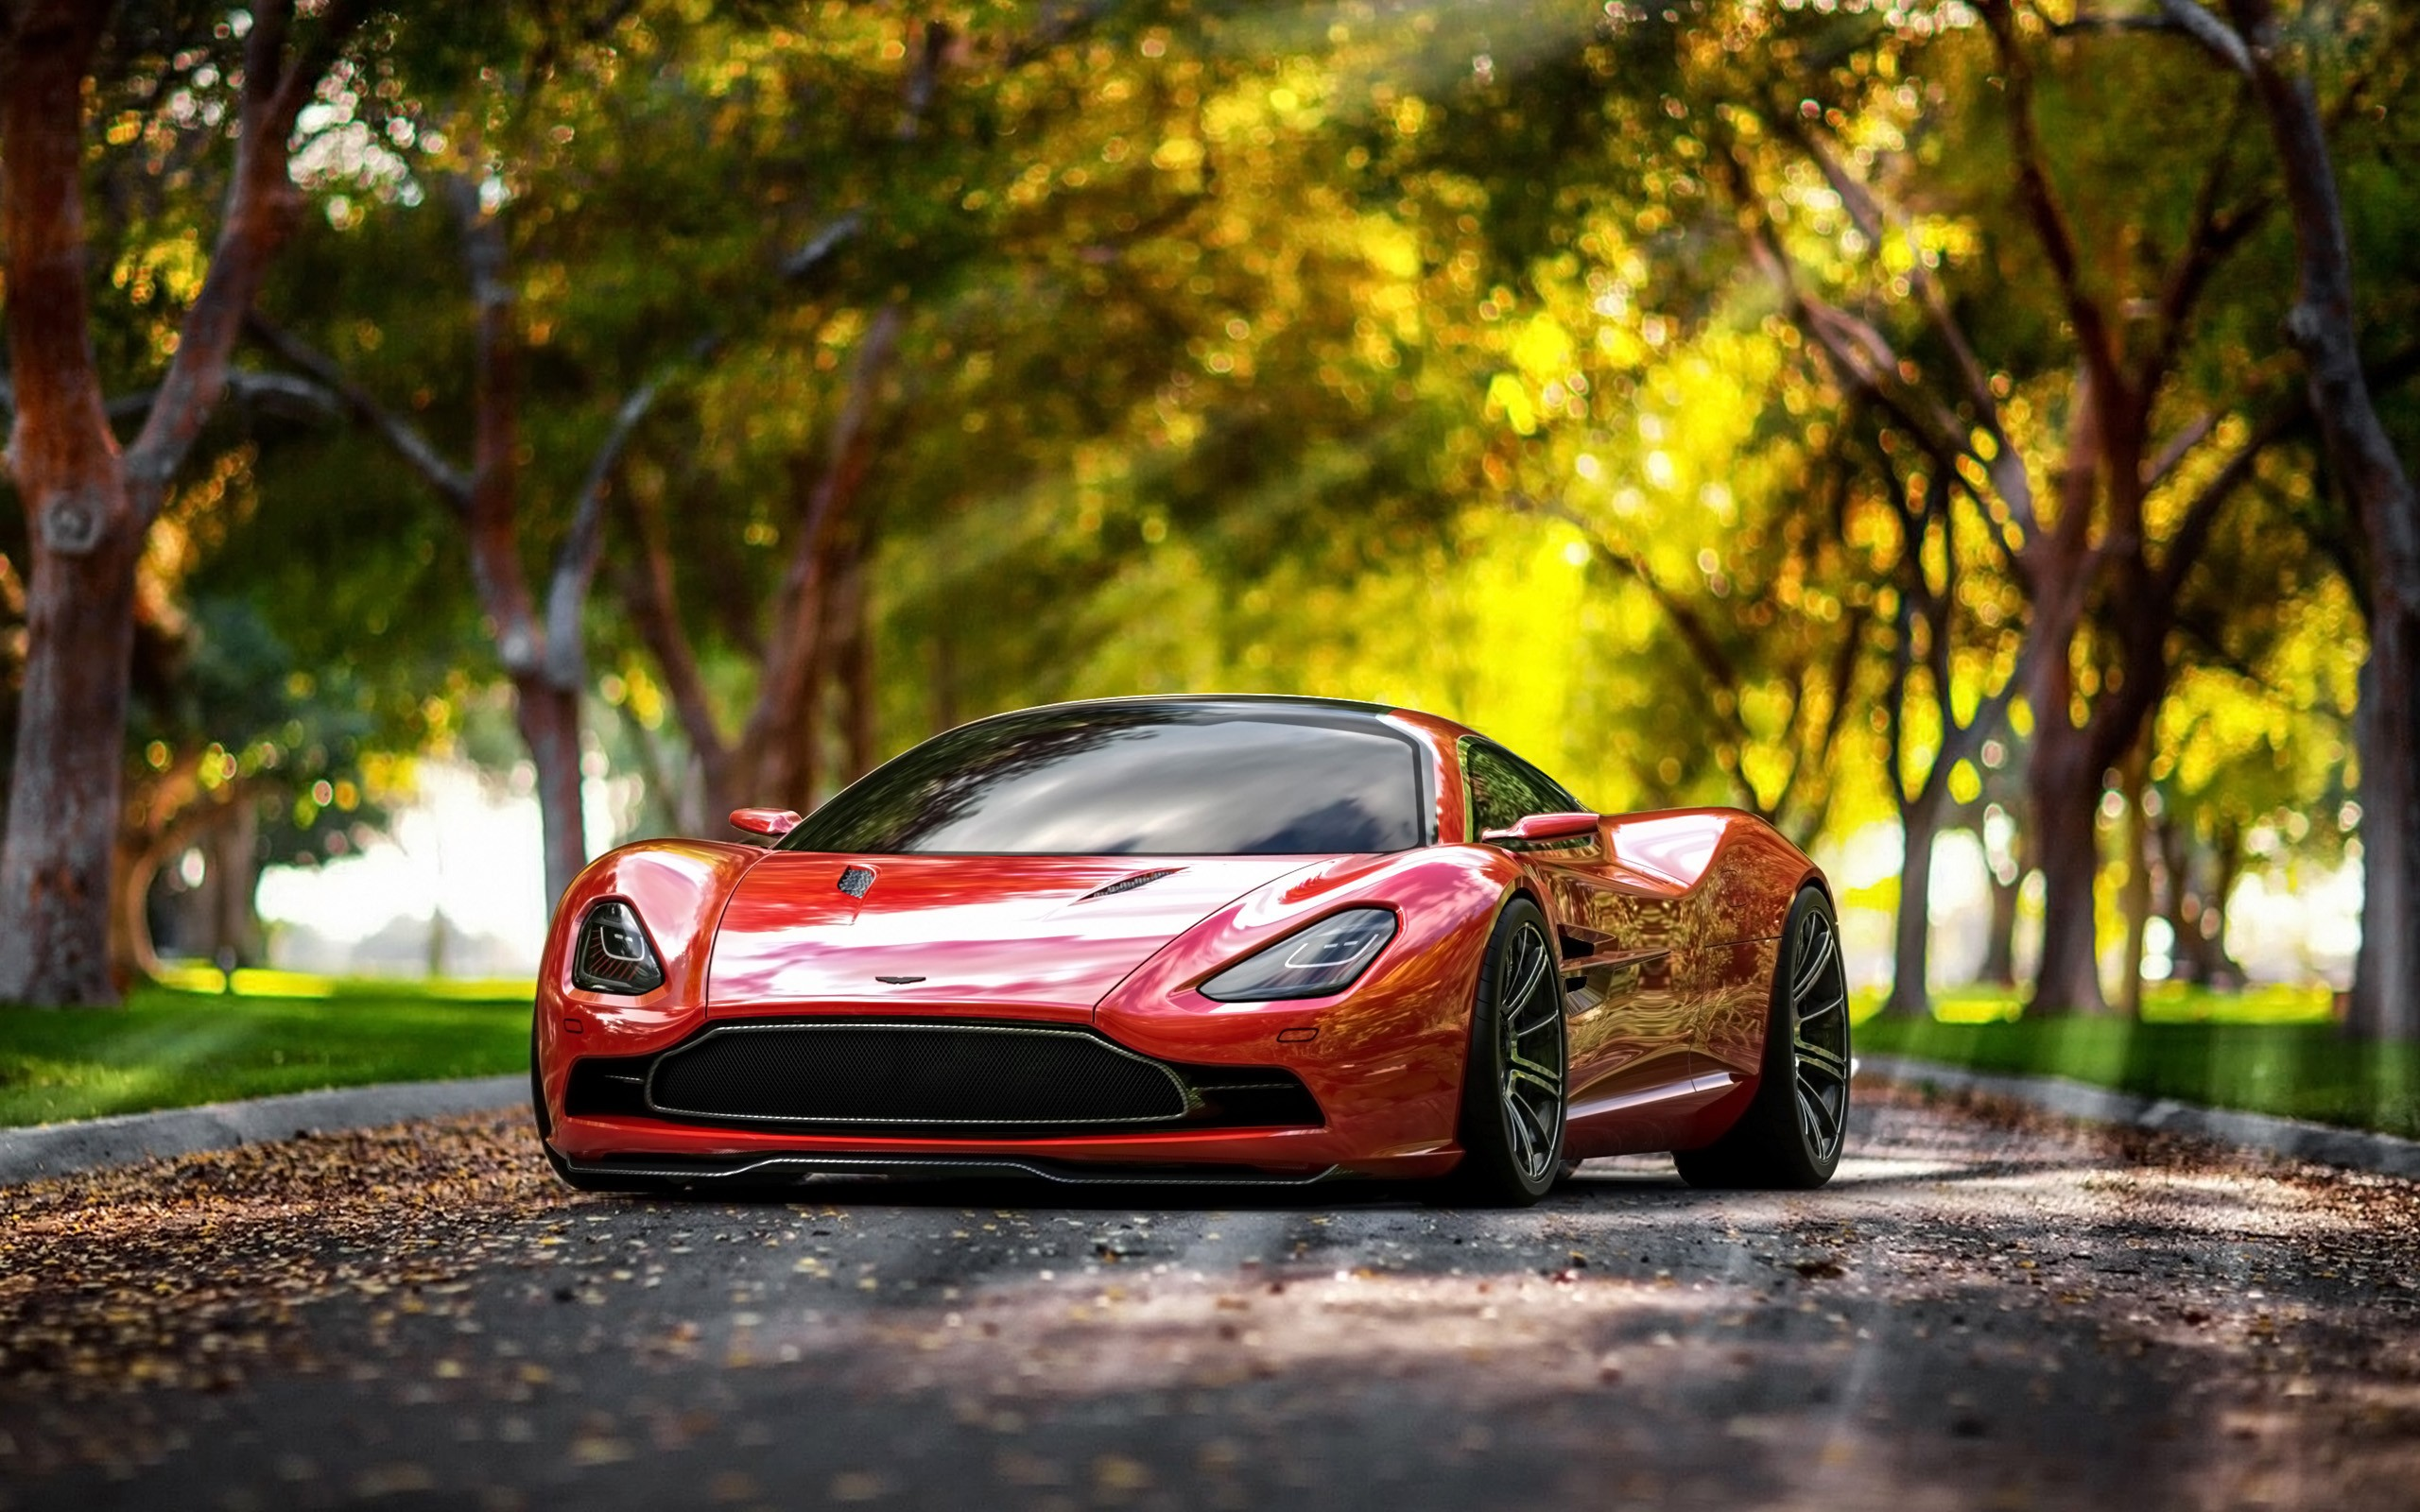 2013 Aston Martin Dbc Concept 4 Wallpaper Hd Car